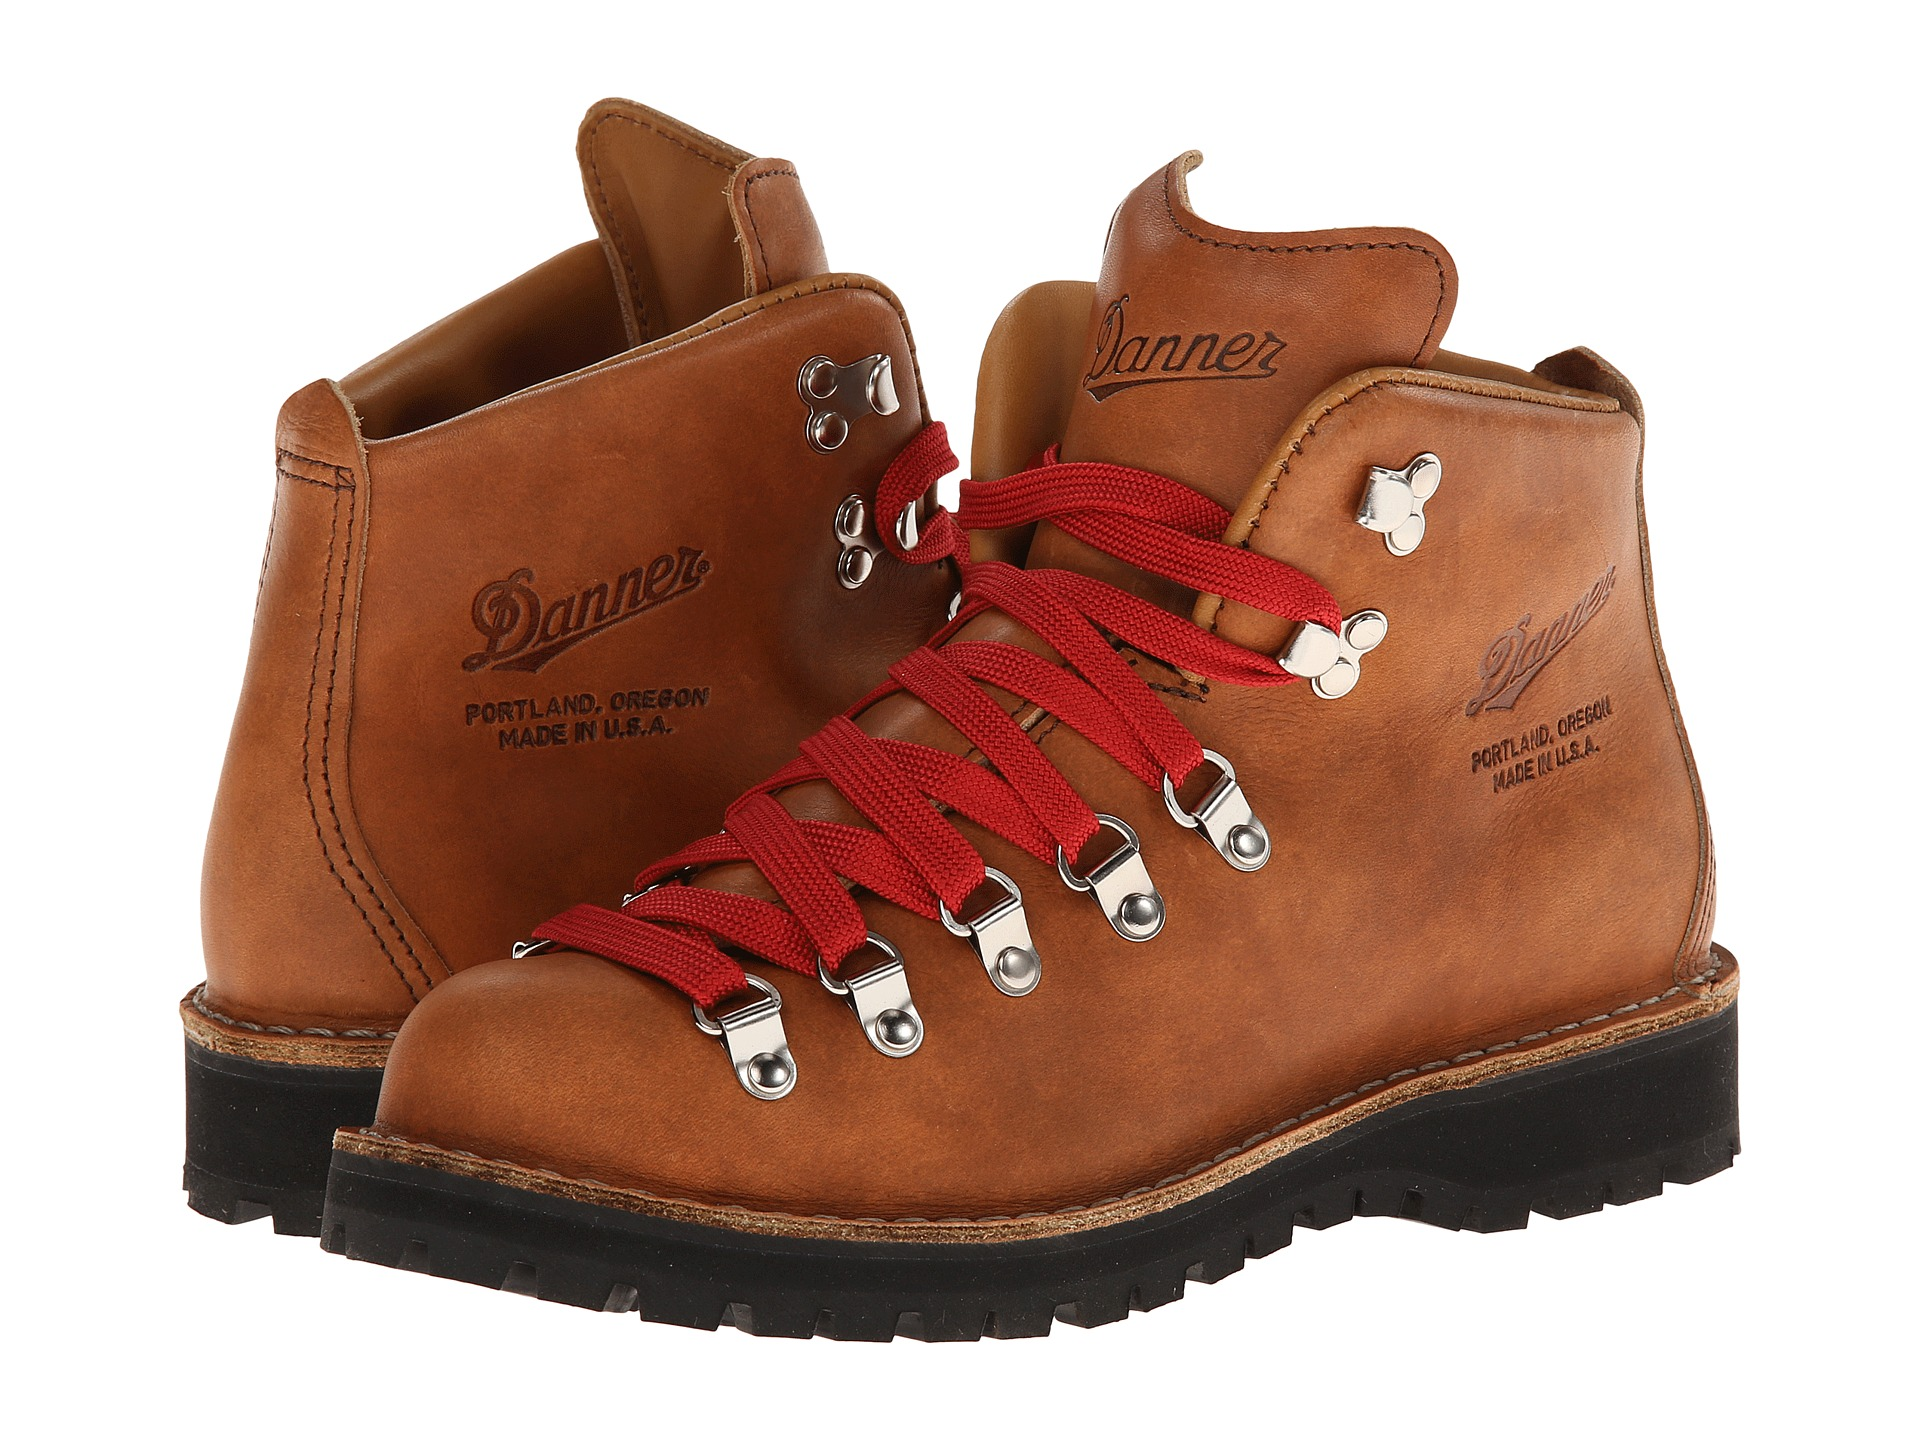 Danner Mountain Light Cascade - Zappos.com Free Shipping BOTH Ways